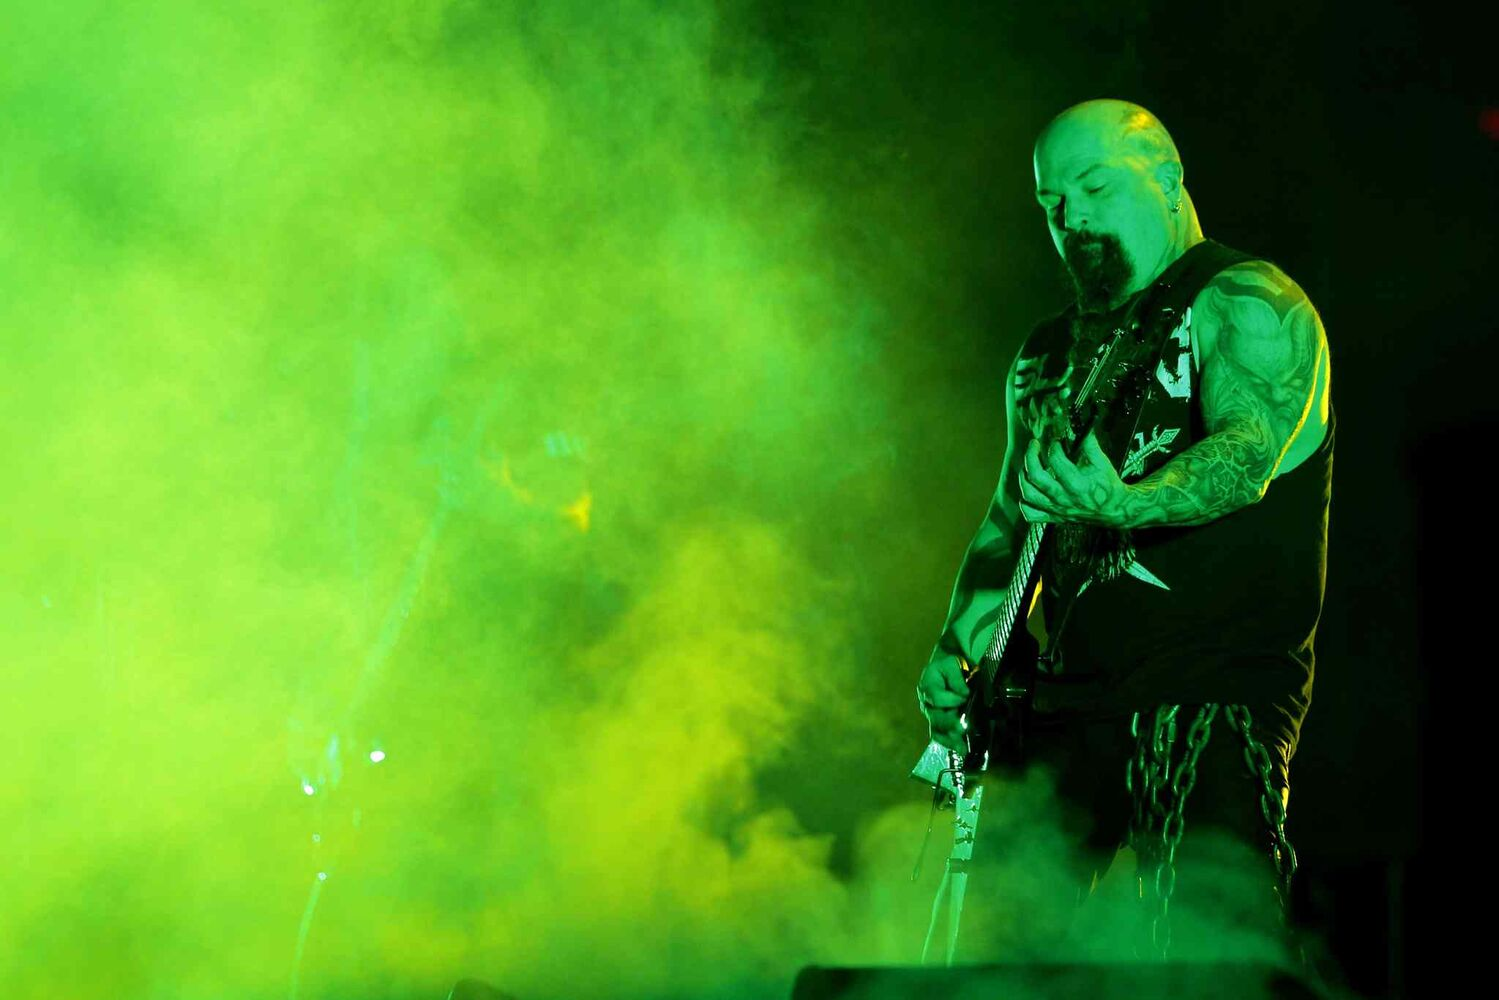 Guitarist Kerry King brings the riffage.